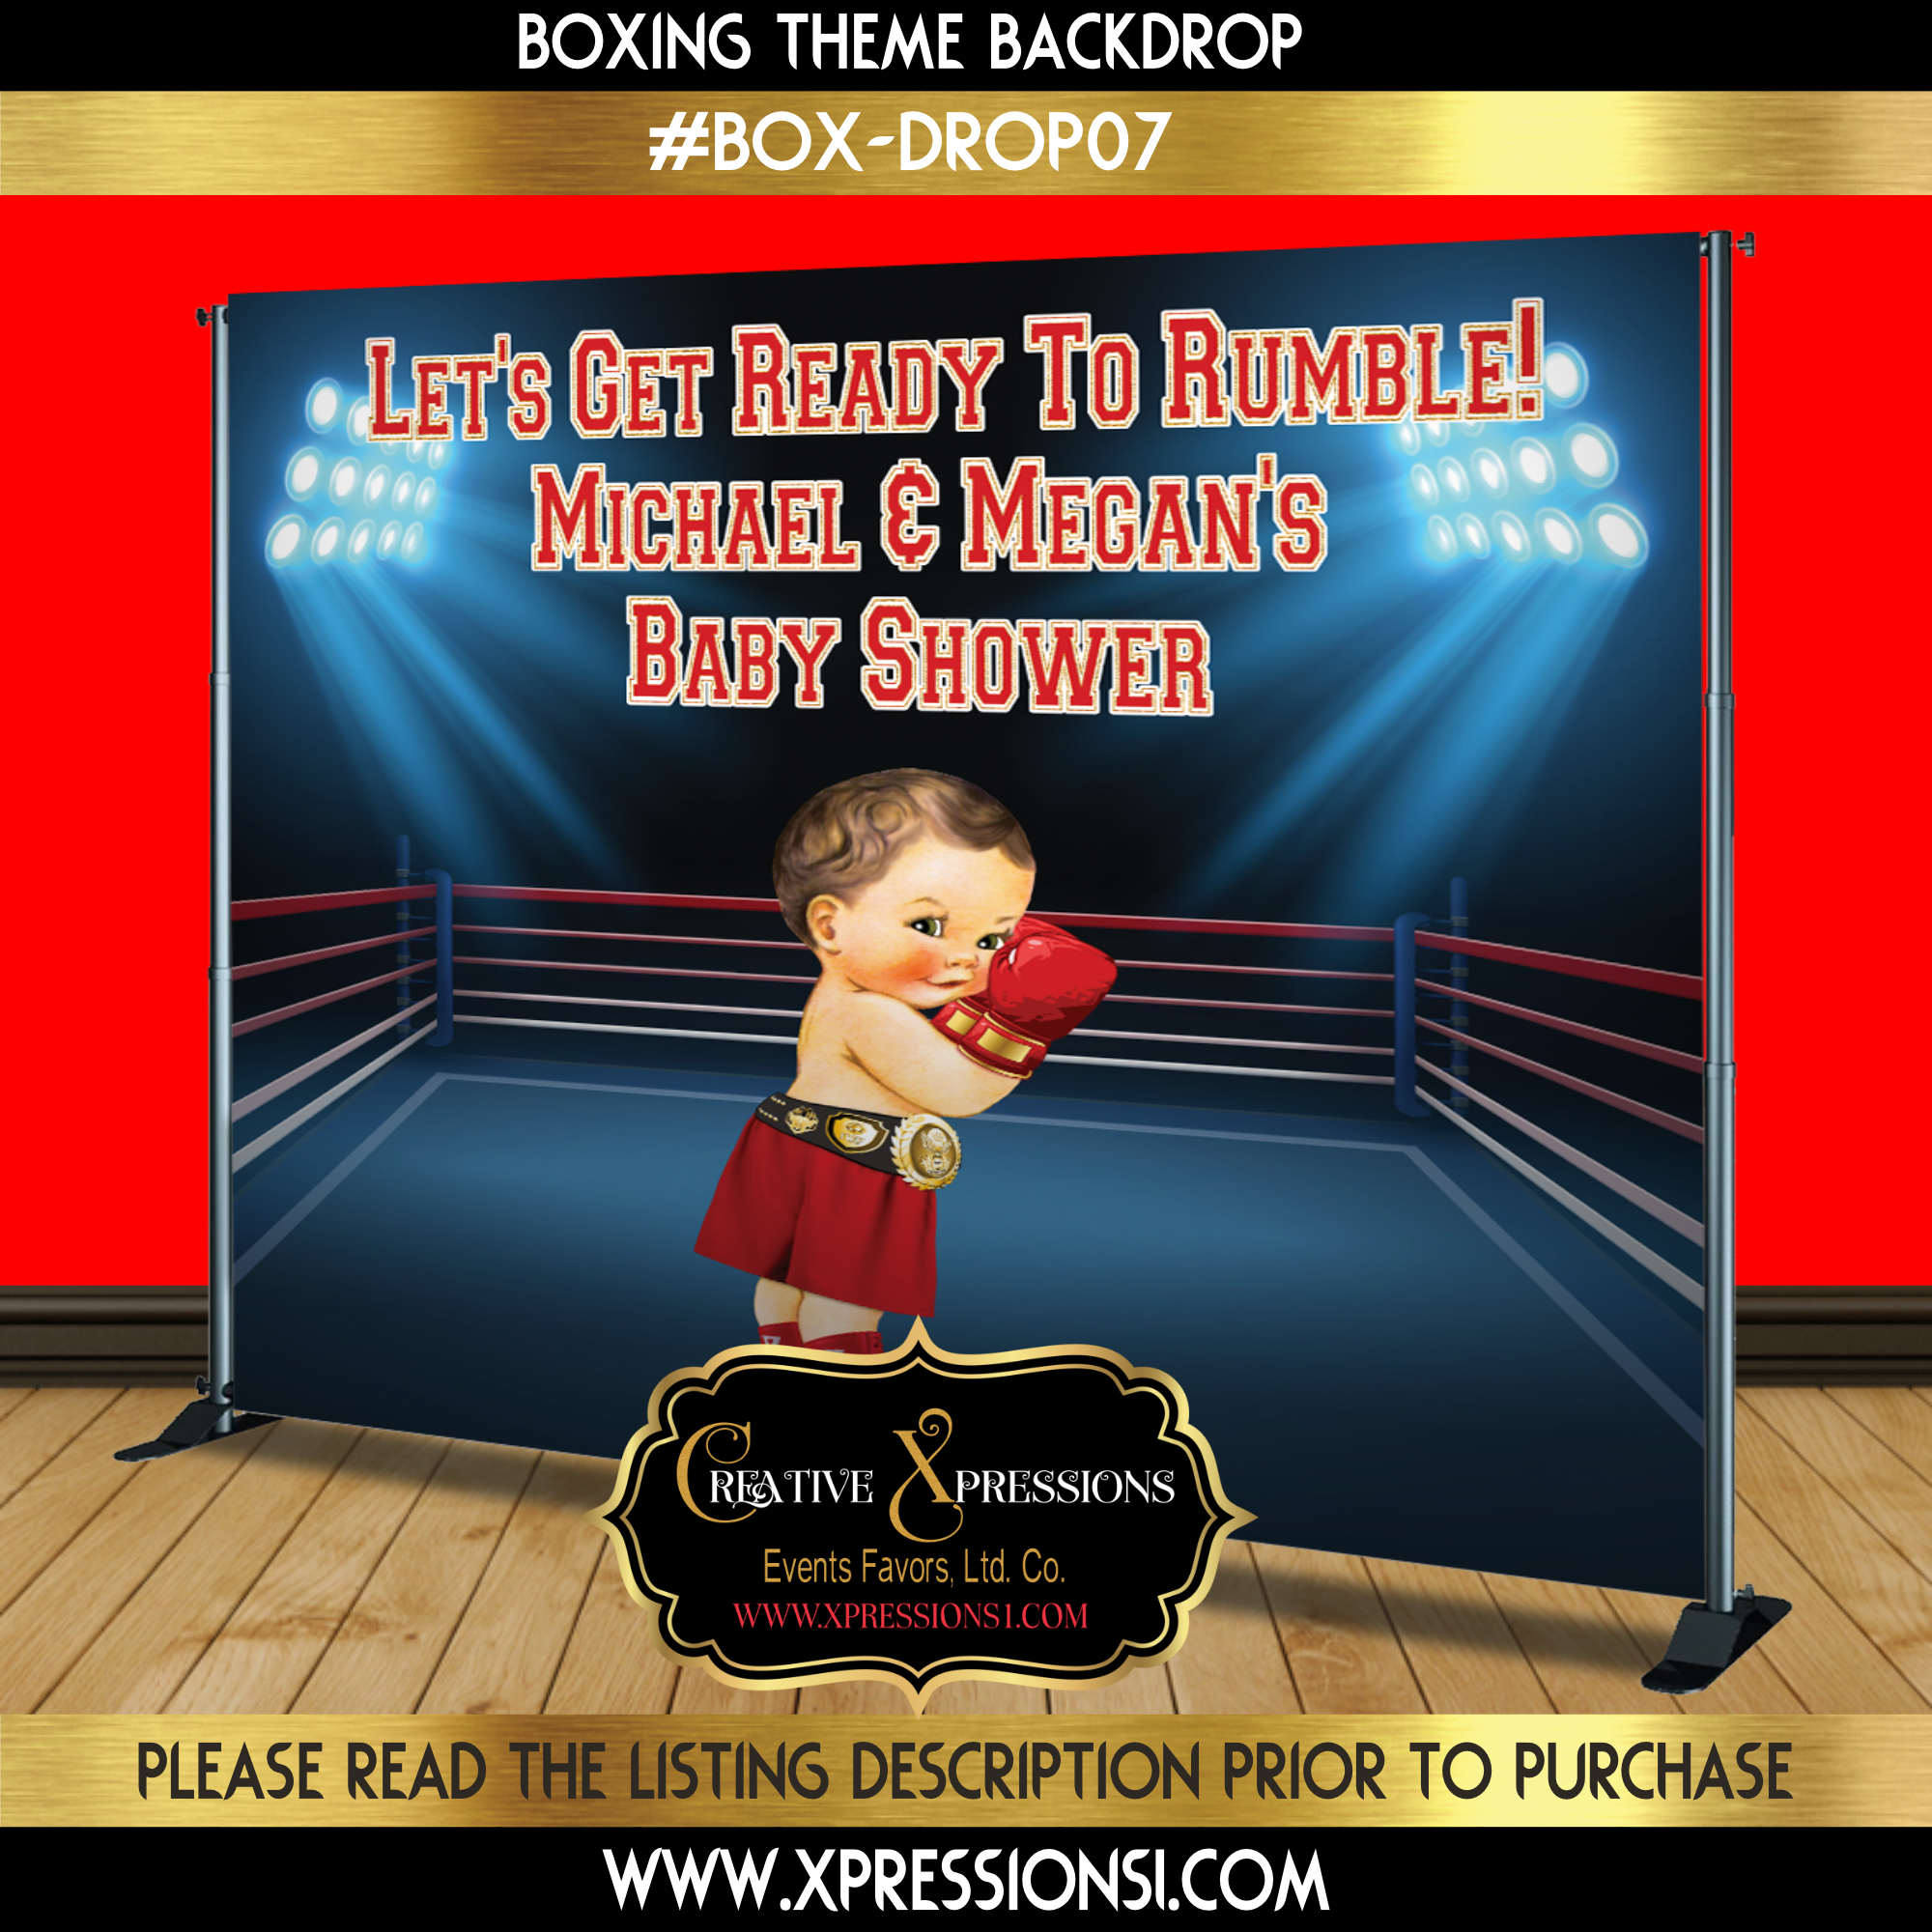 Boxing Champ Backdrop